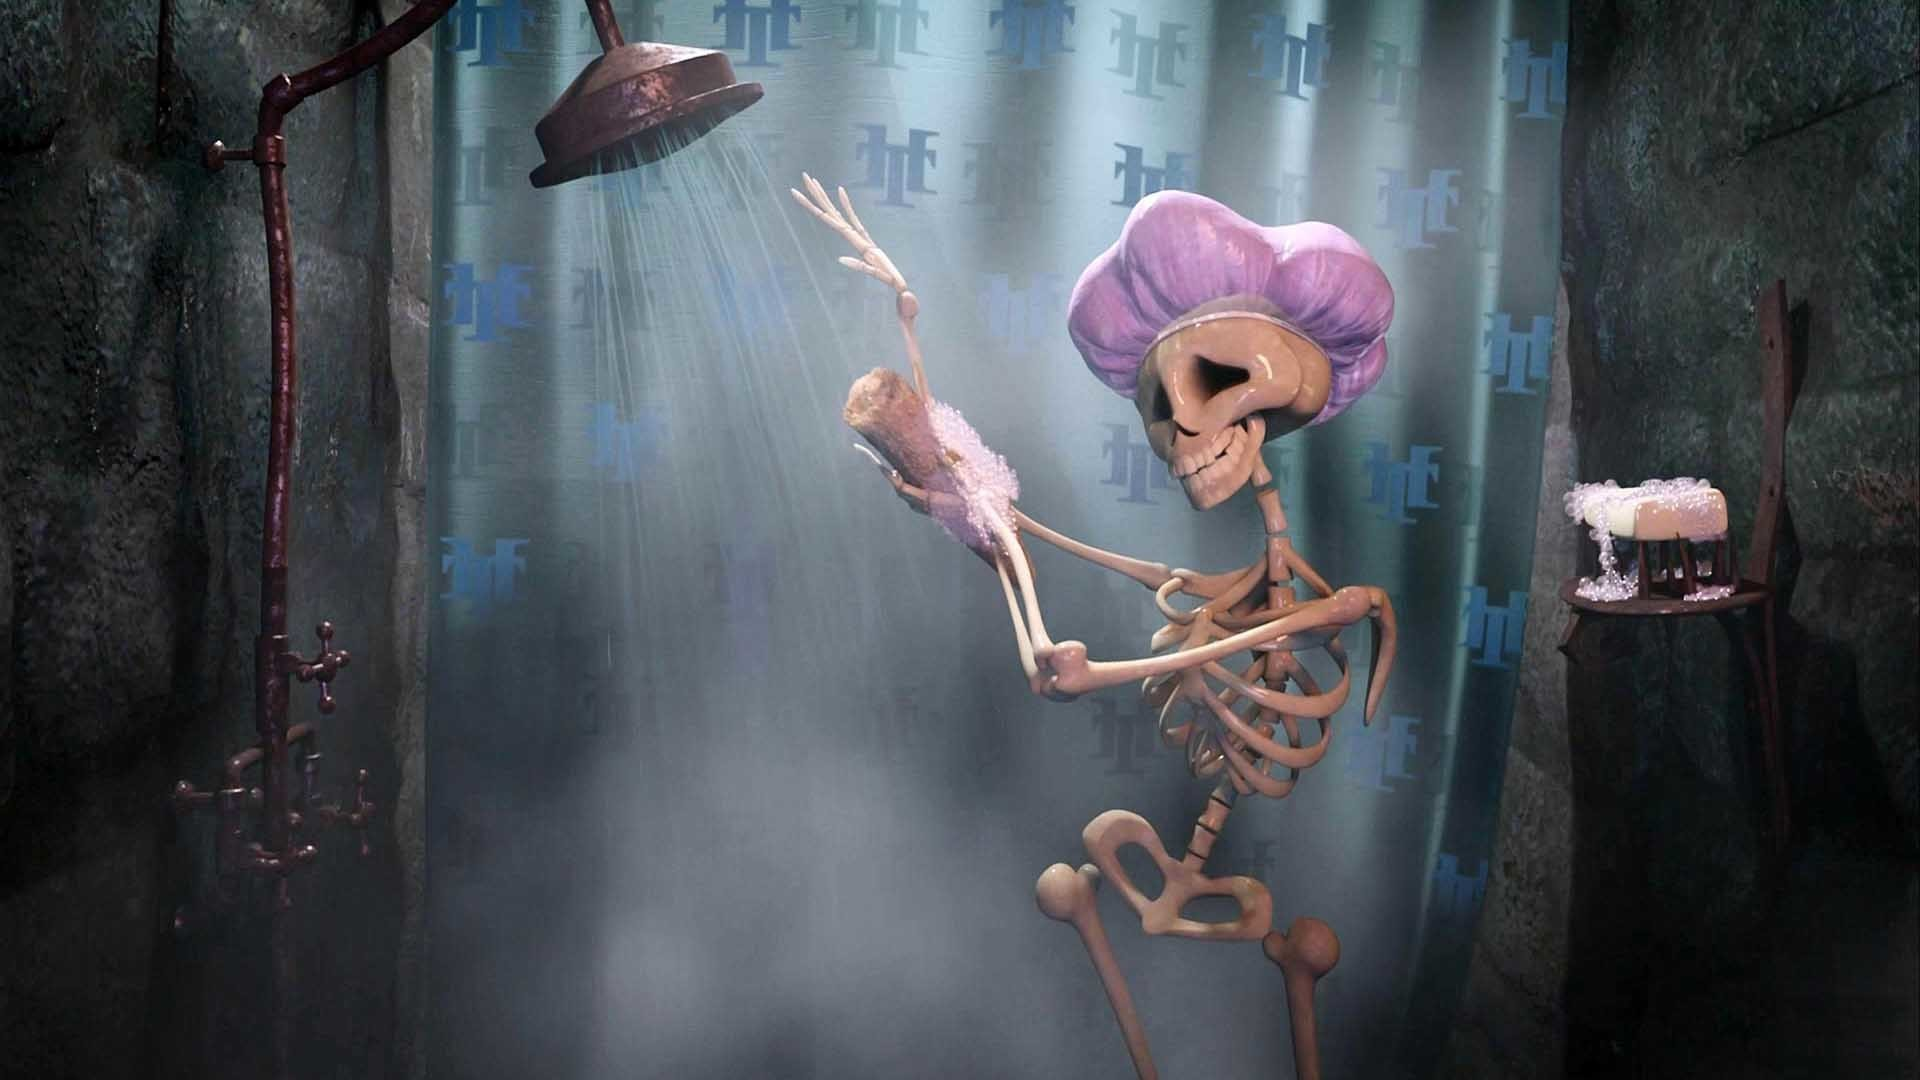 Halloween Spooky Wallpaper.Scary Halloween Wallpapers Hd 68 Background Pictures